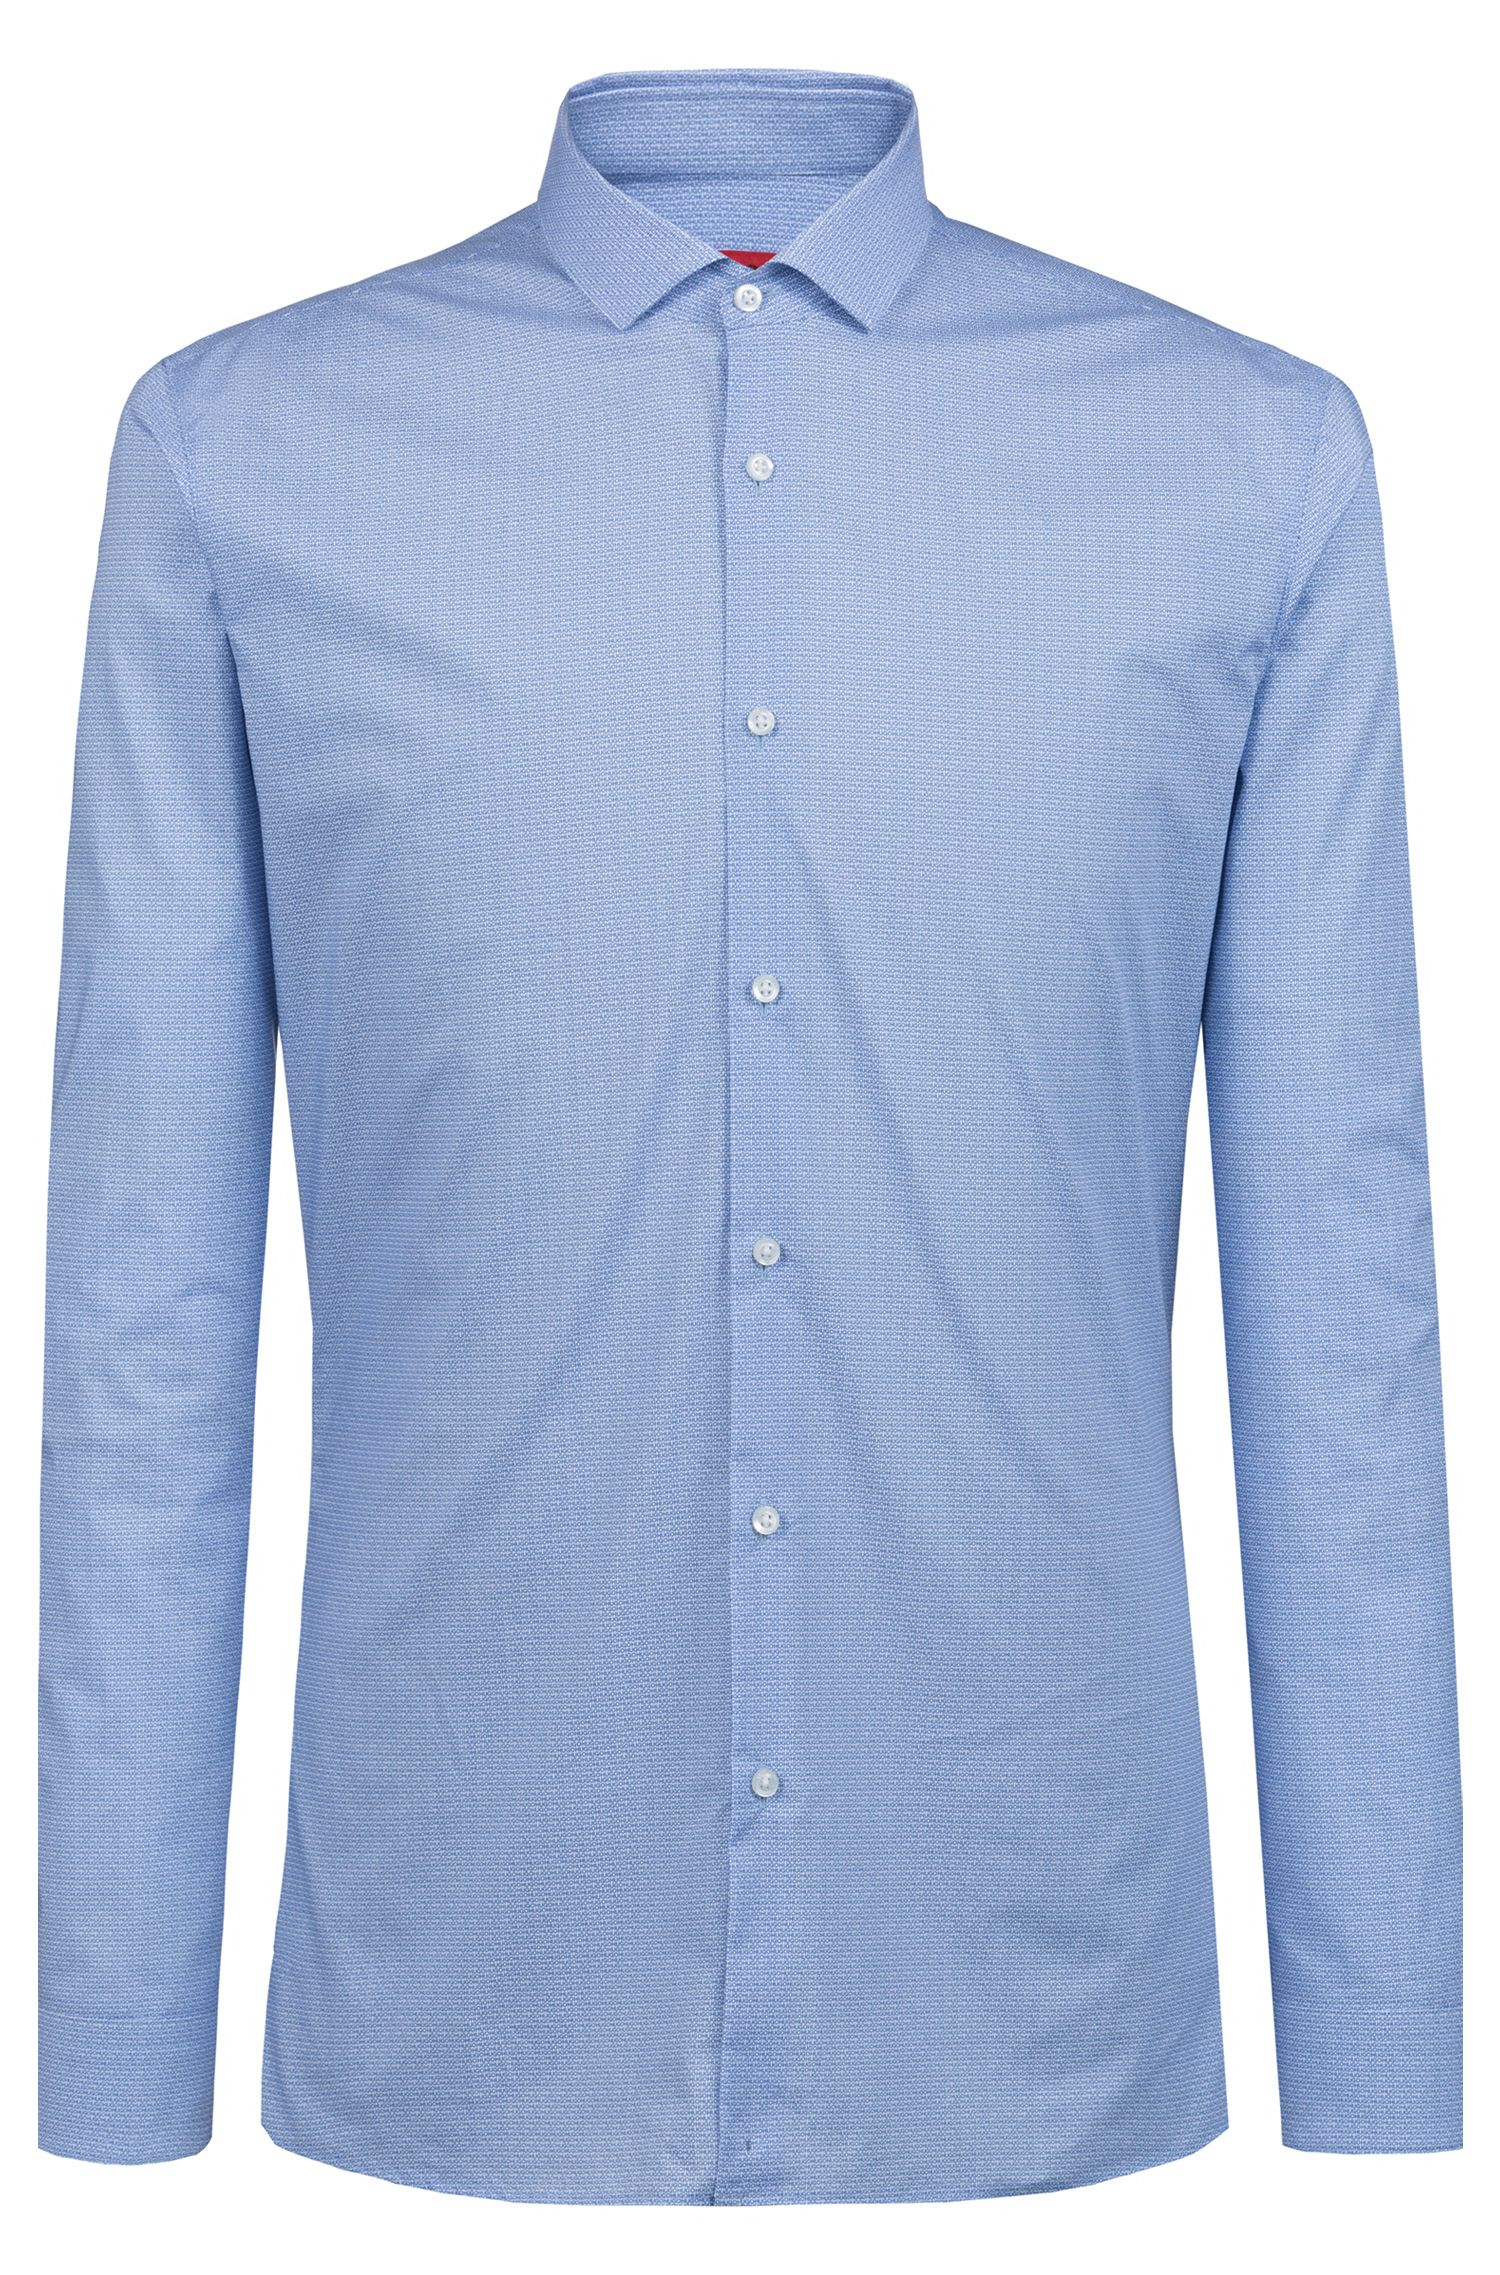 Extra-slim-fit cotton shirt with logo print, Patterned